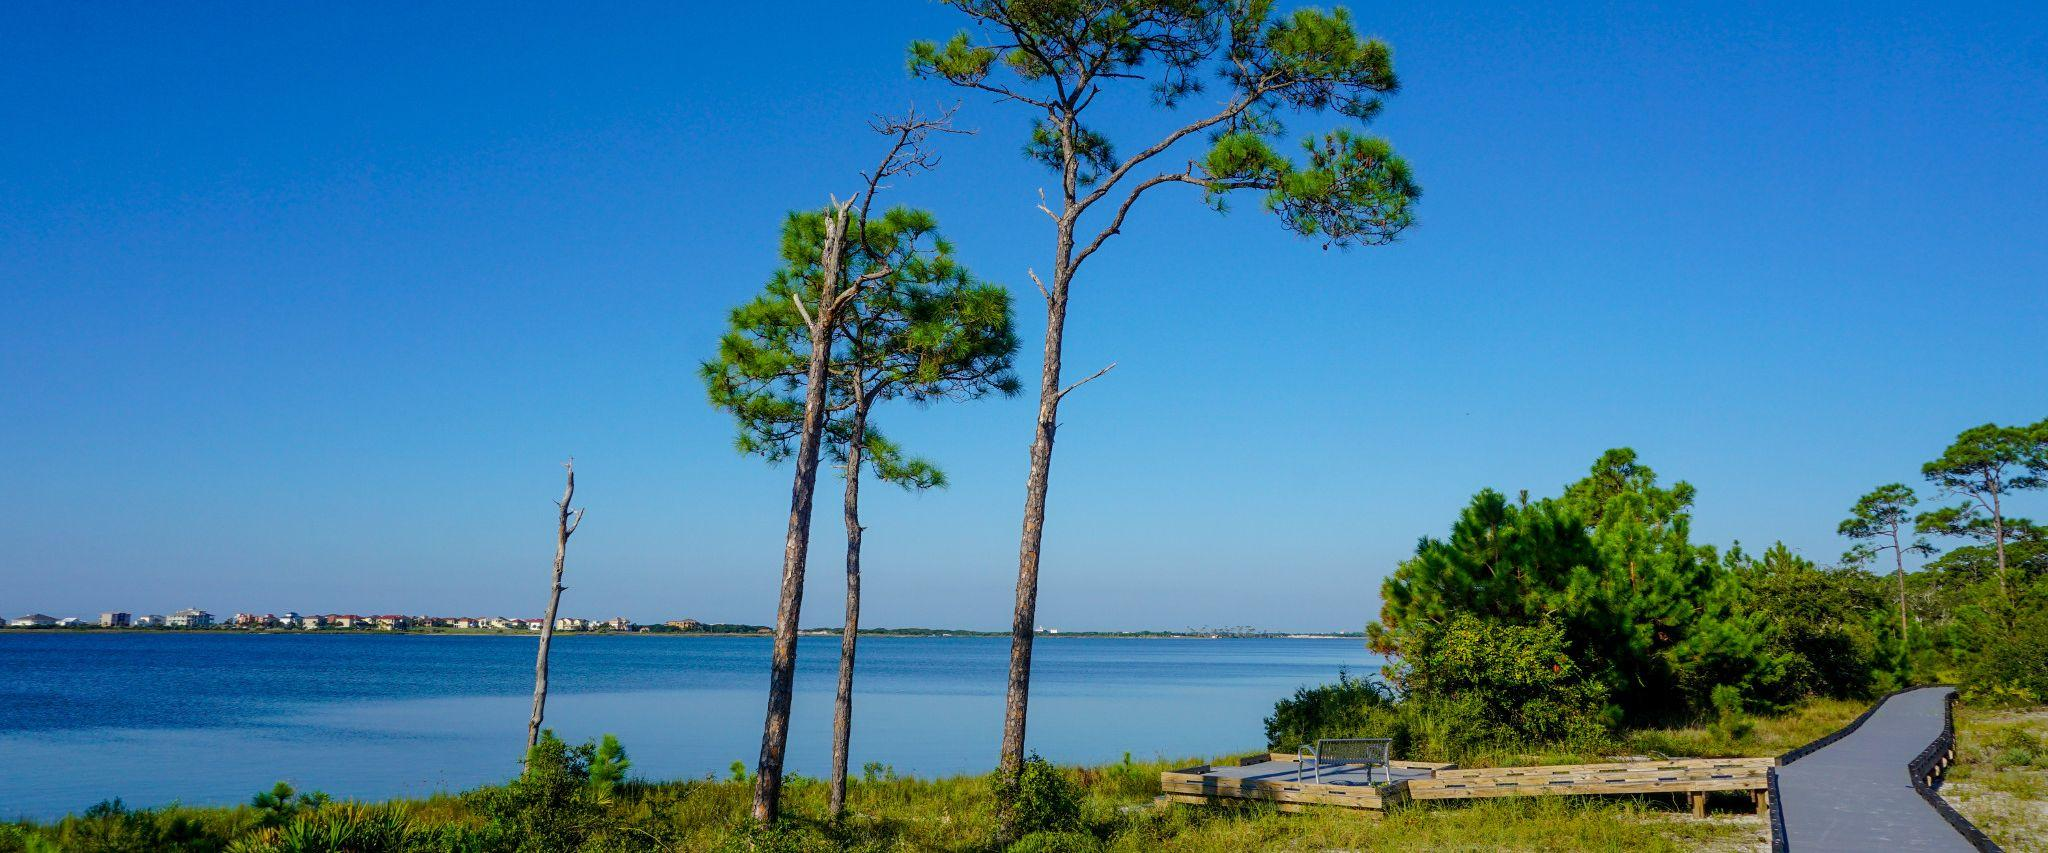 Bon Secour National Wildlife Refuge Gulf Shores, AL